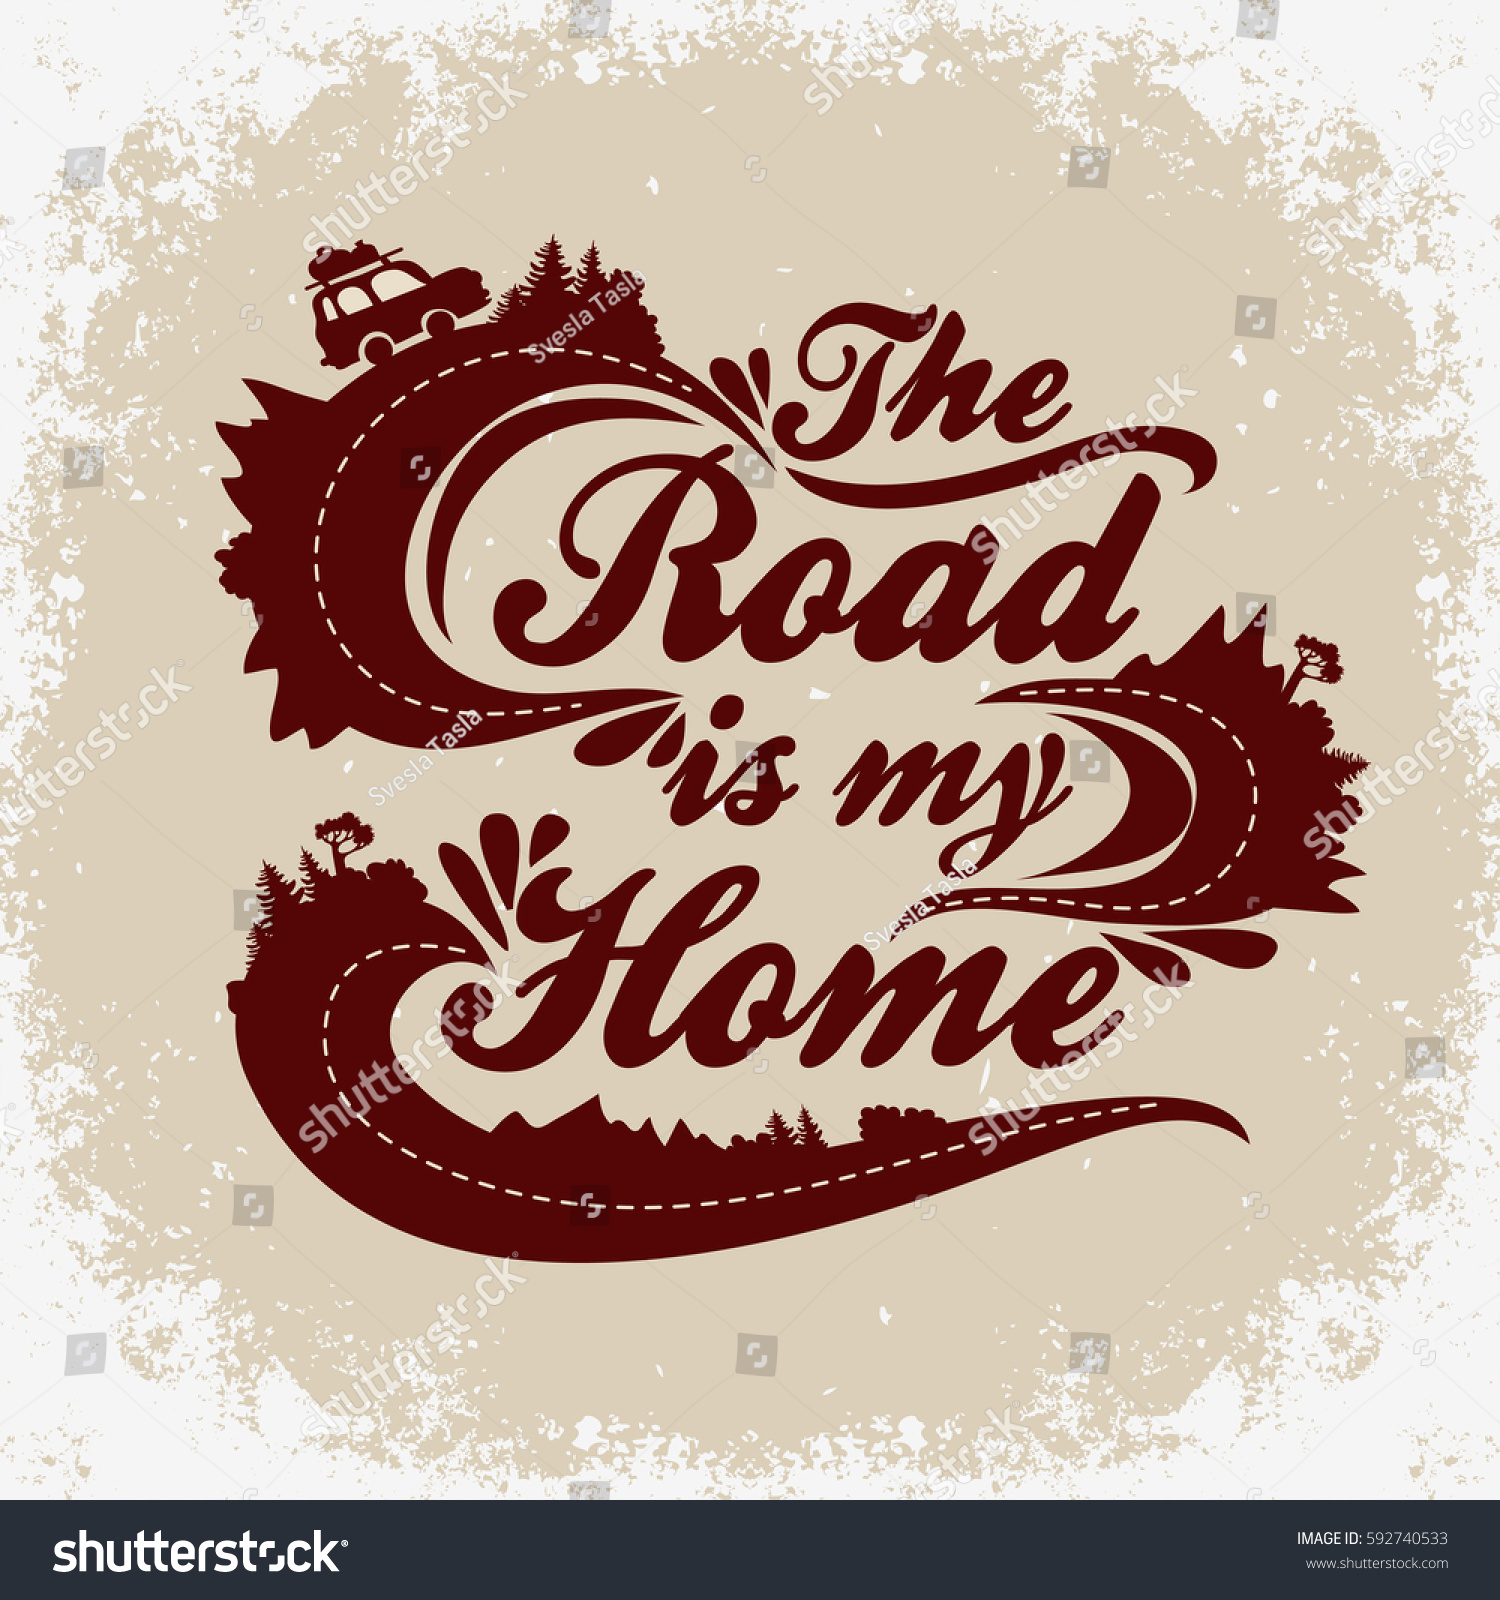 Road My Home Inspiration Typography Tshirt Stock Vector Royalty Free 592740533